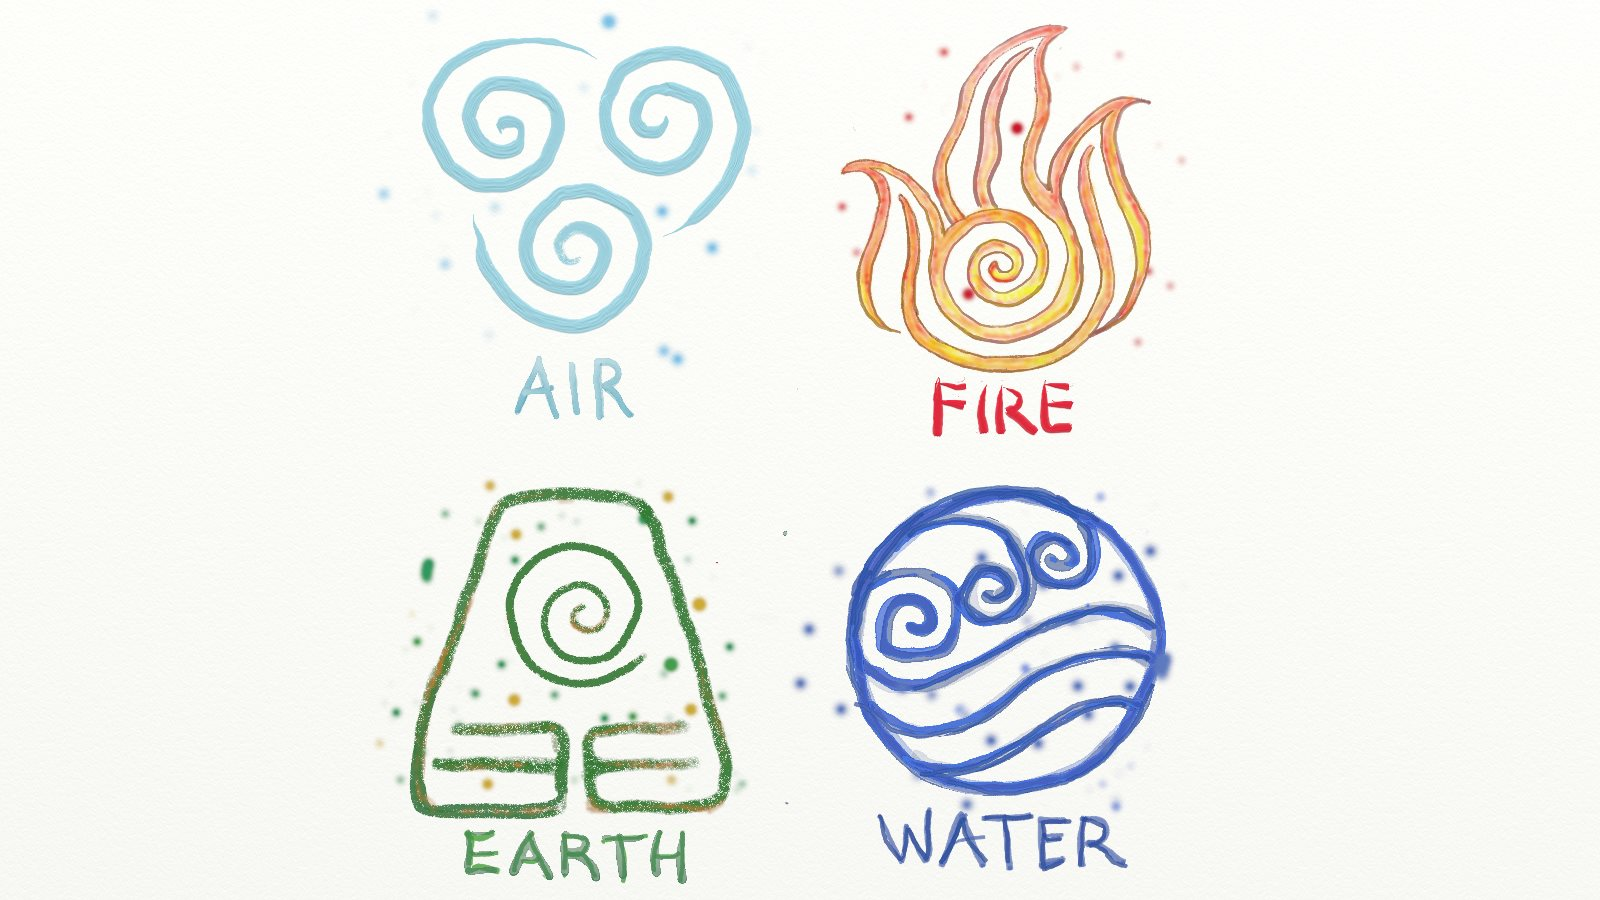 earth air water fire (1).jpg